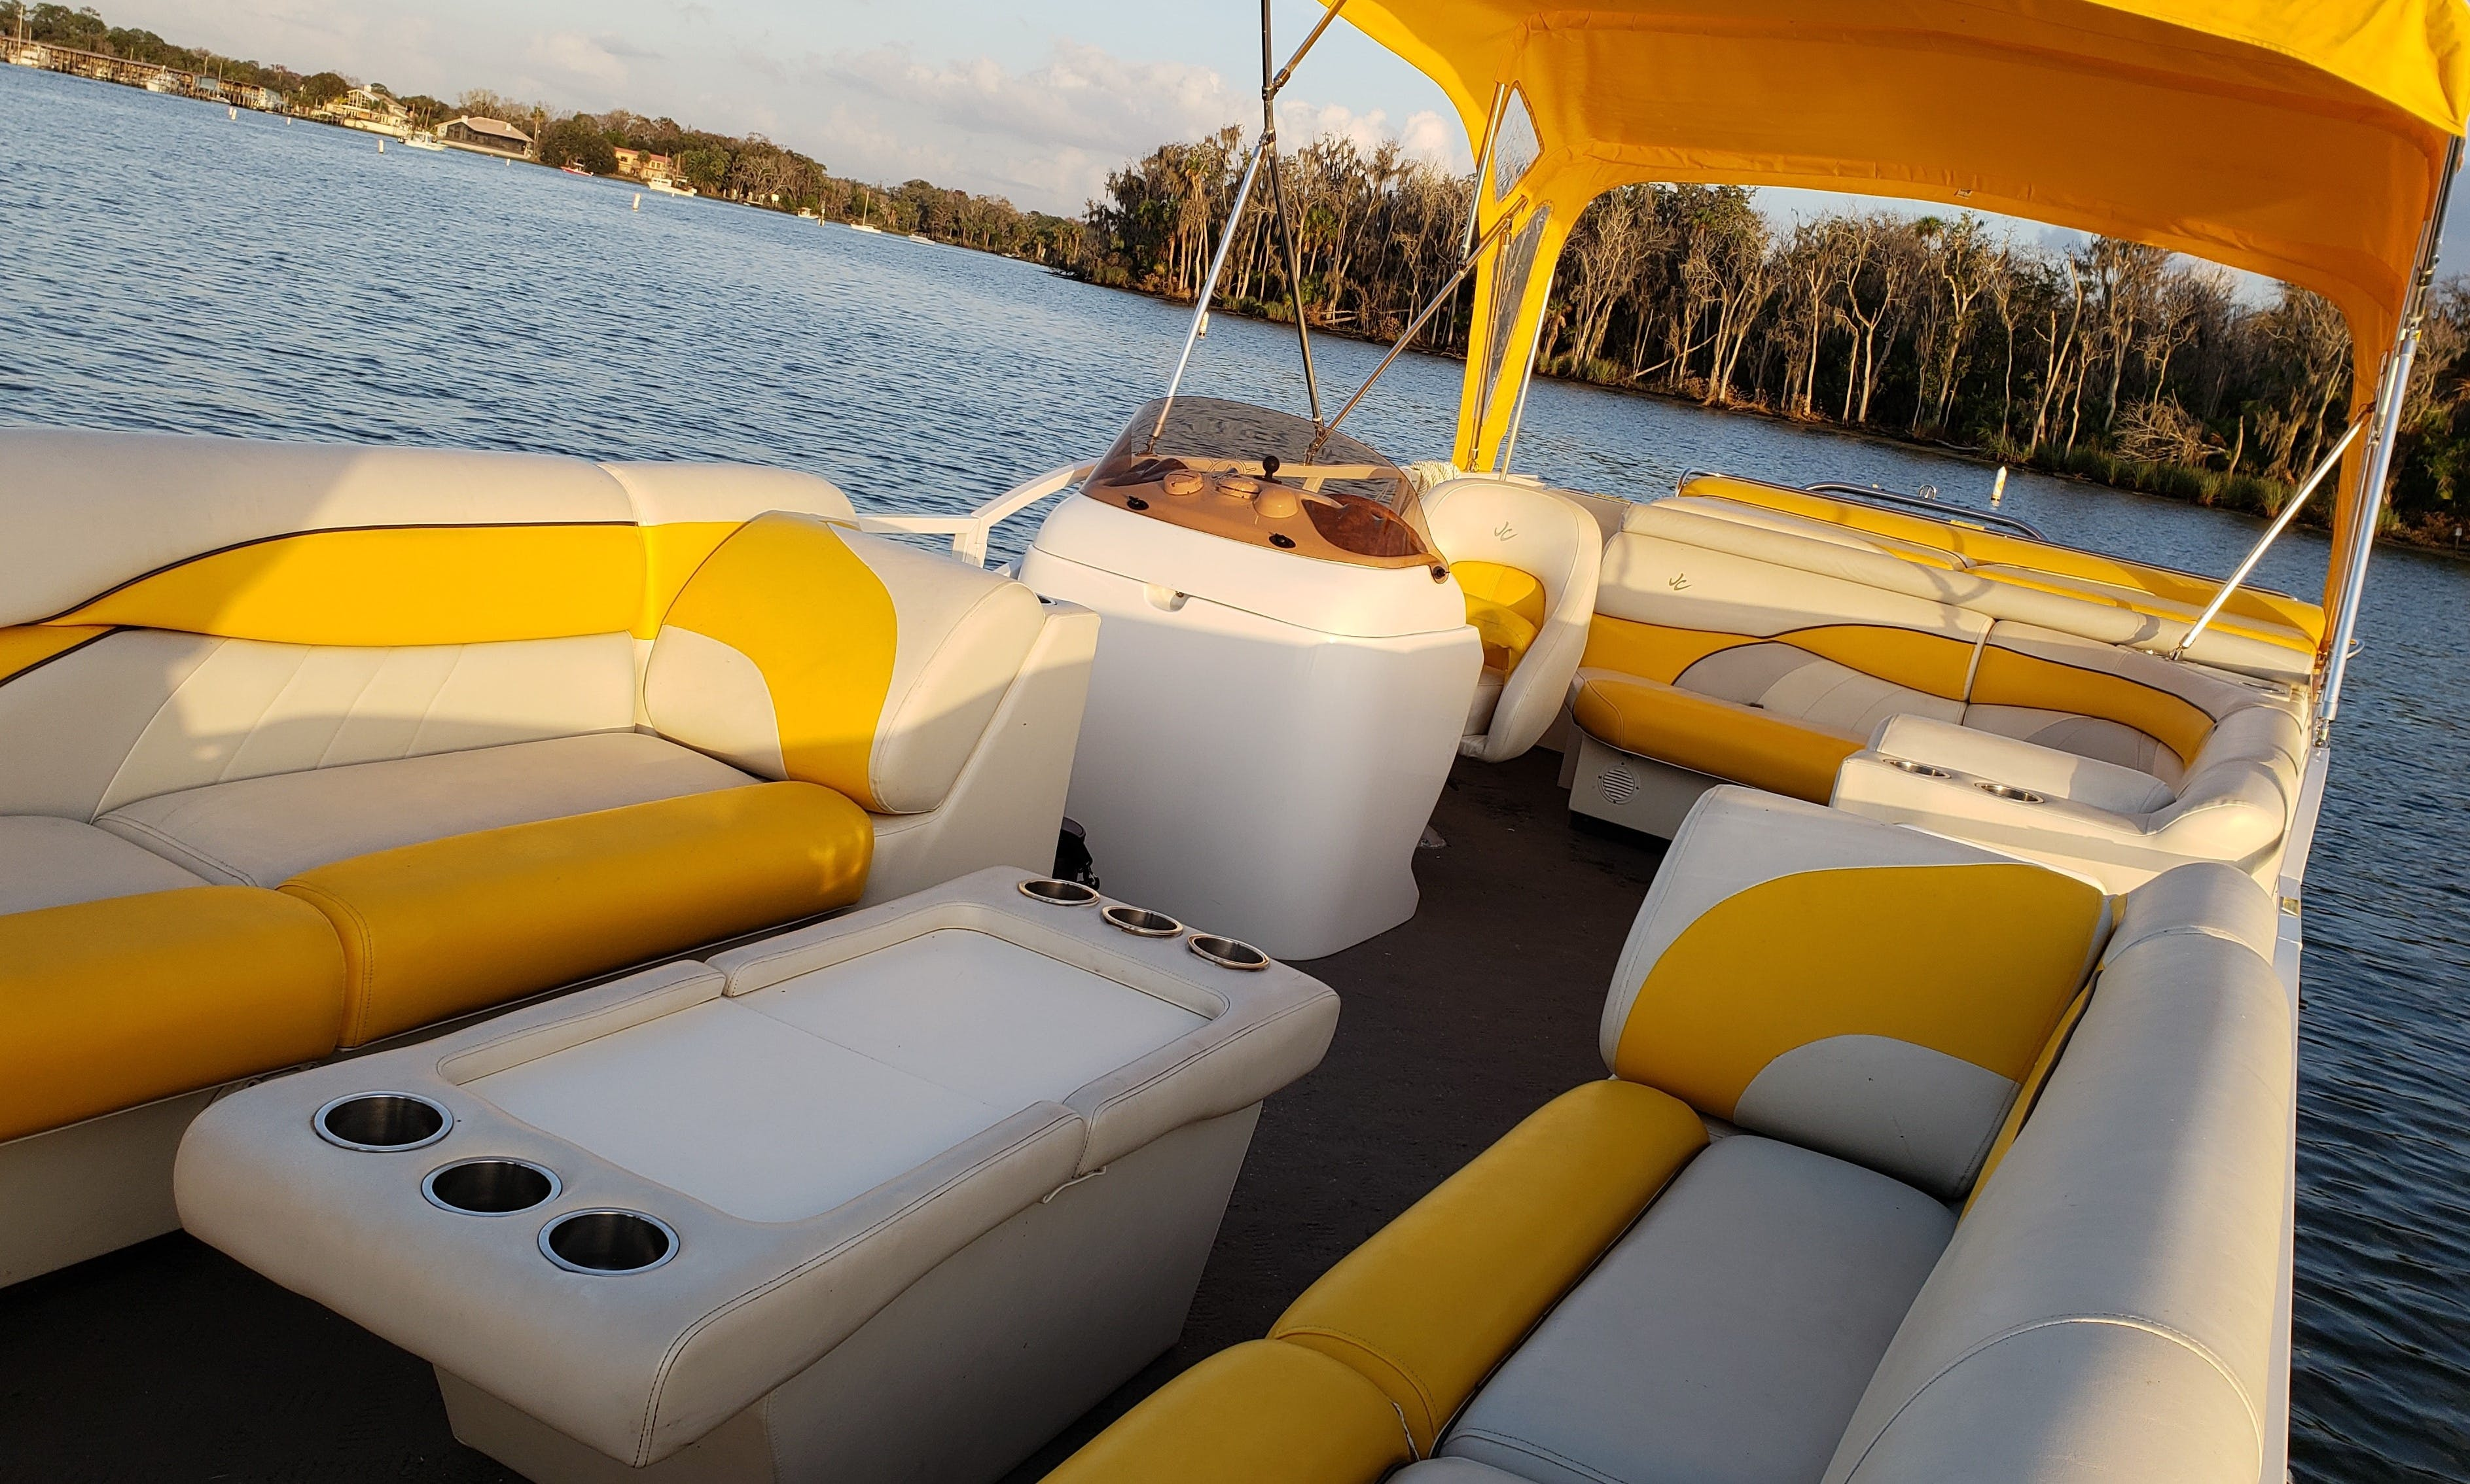 26' Pontoon Charter in Crystal River   Live Music Sunset Cruises   Day Charter